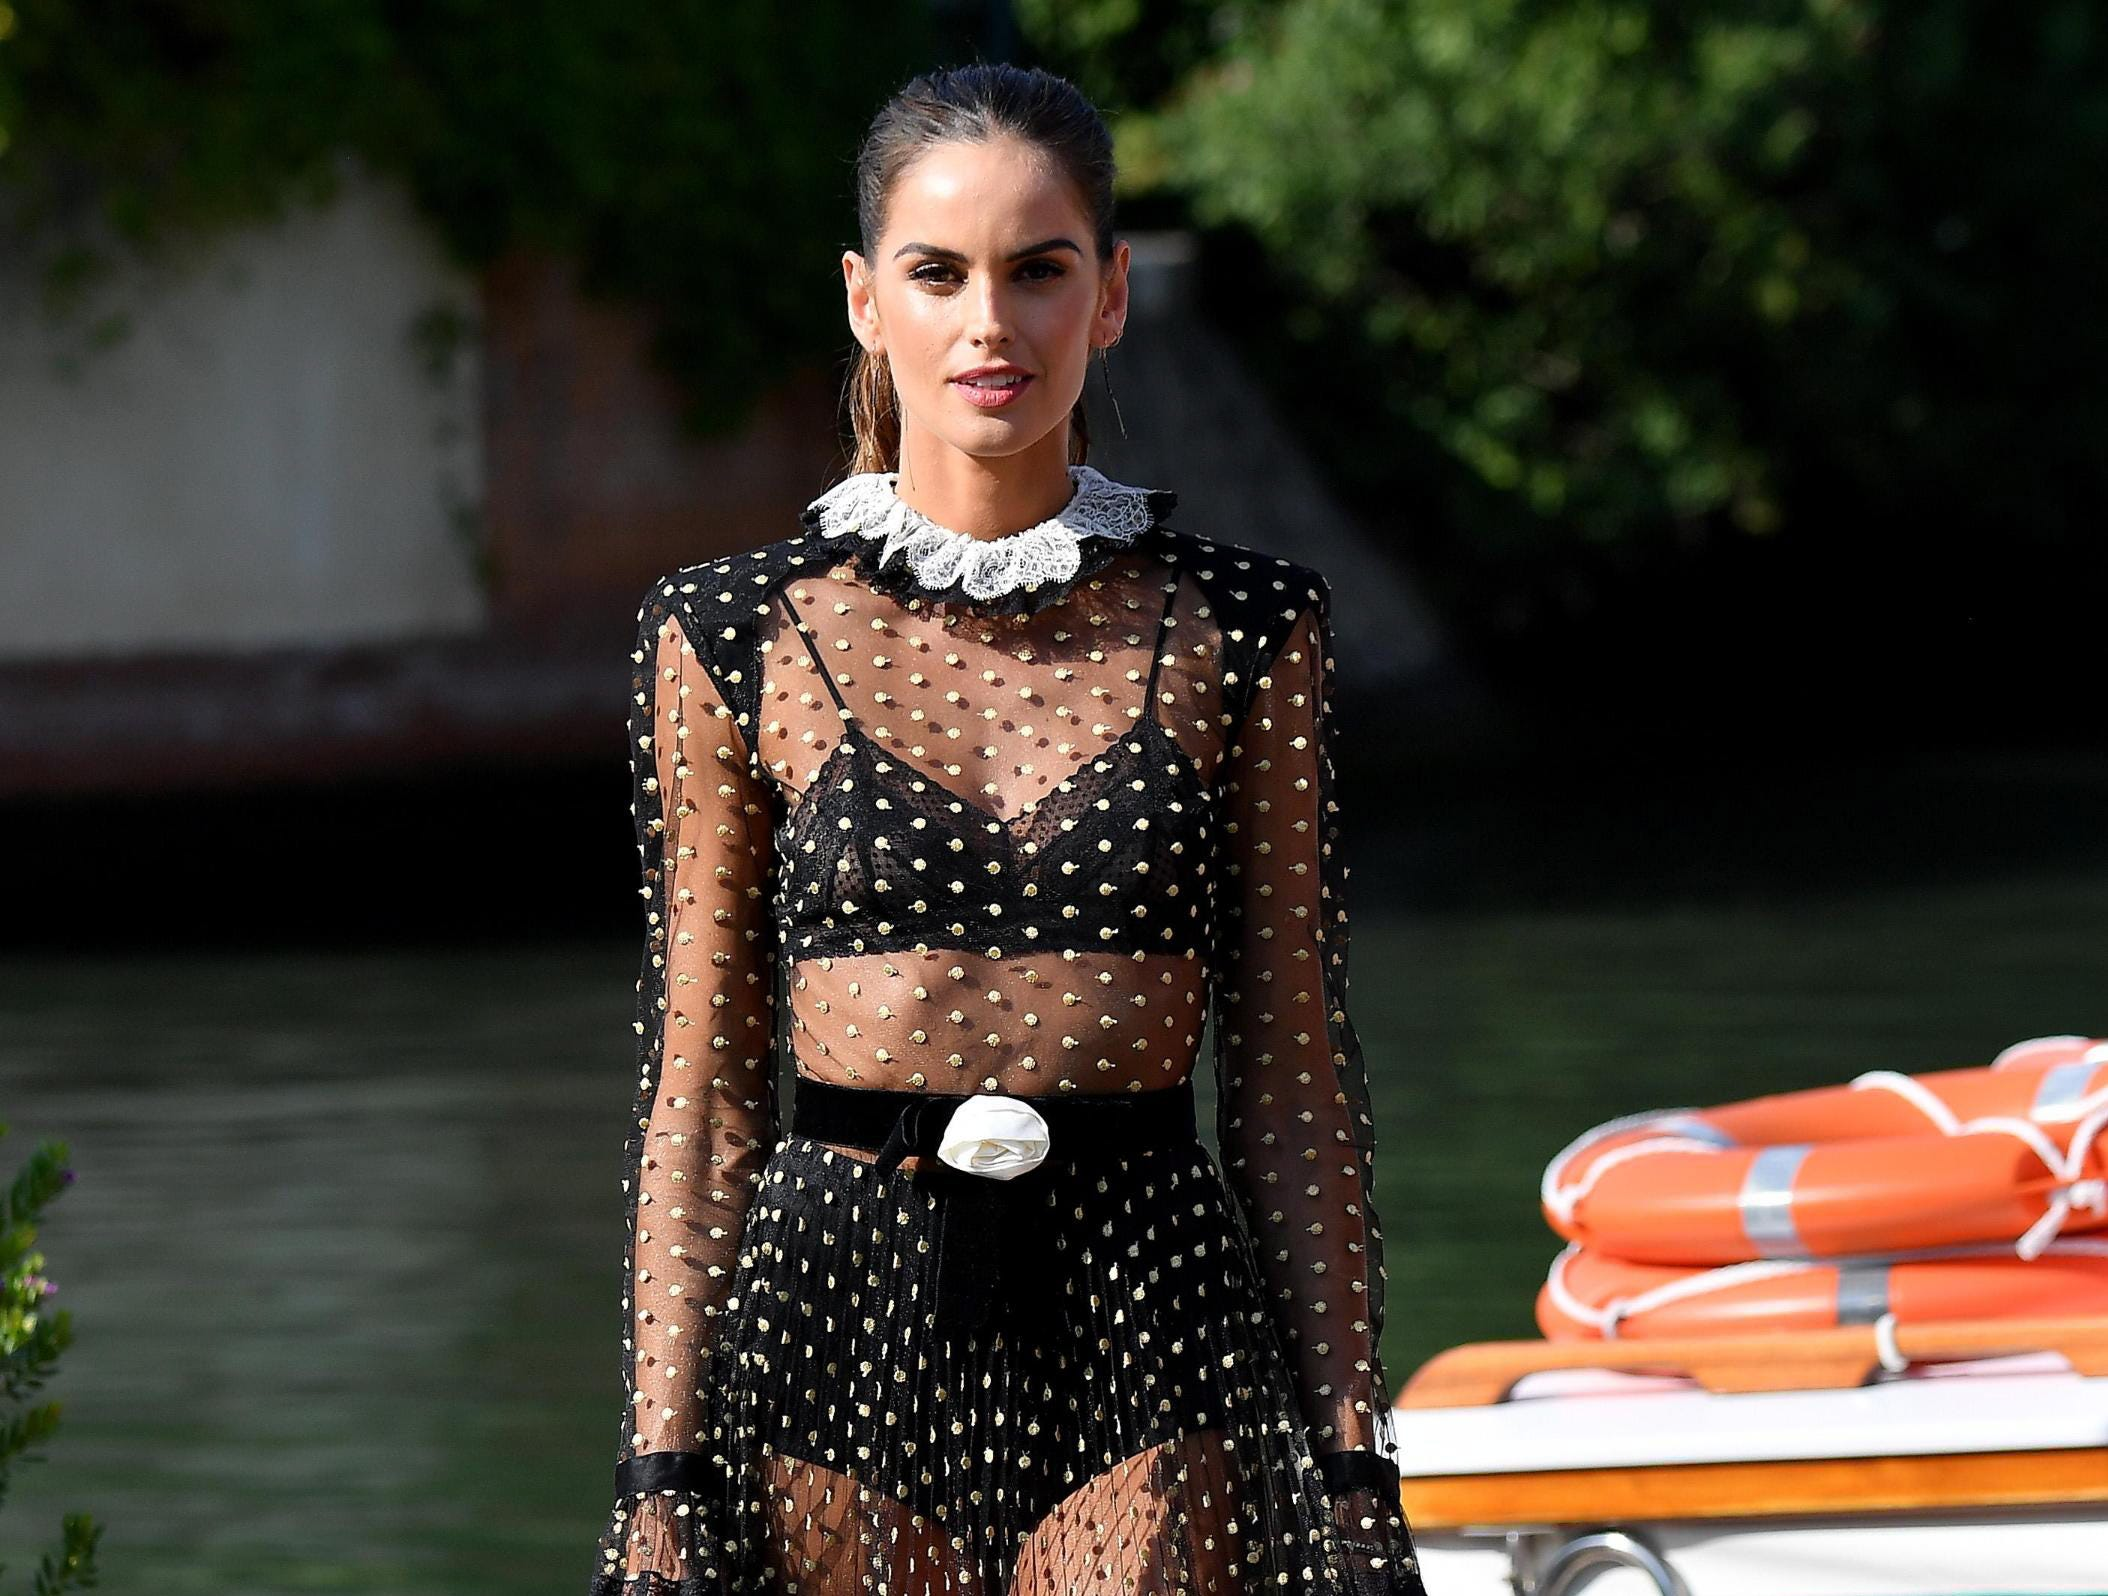 Model Izabel Goulart posed in a sheer gown ahead of the Venice International Film Festival, in Venice, Italy on Aug. 28, 2018.